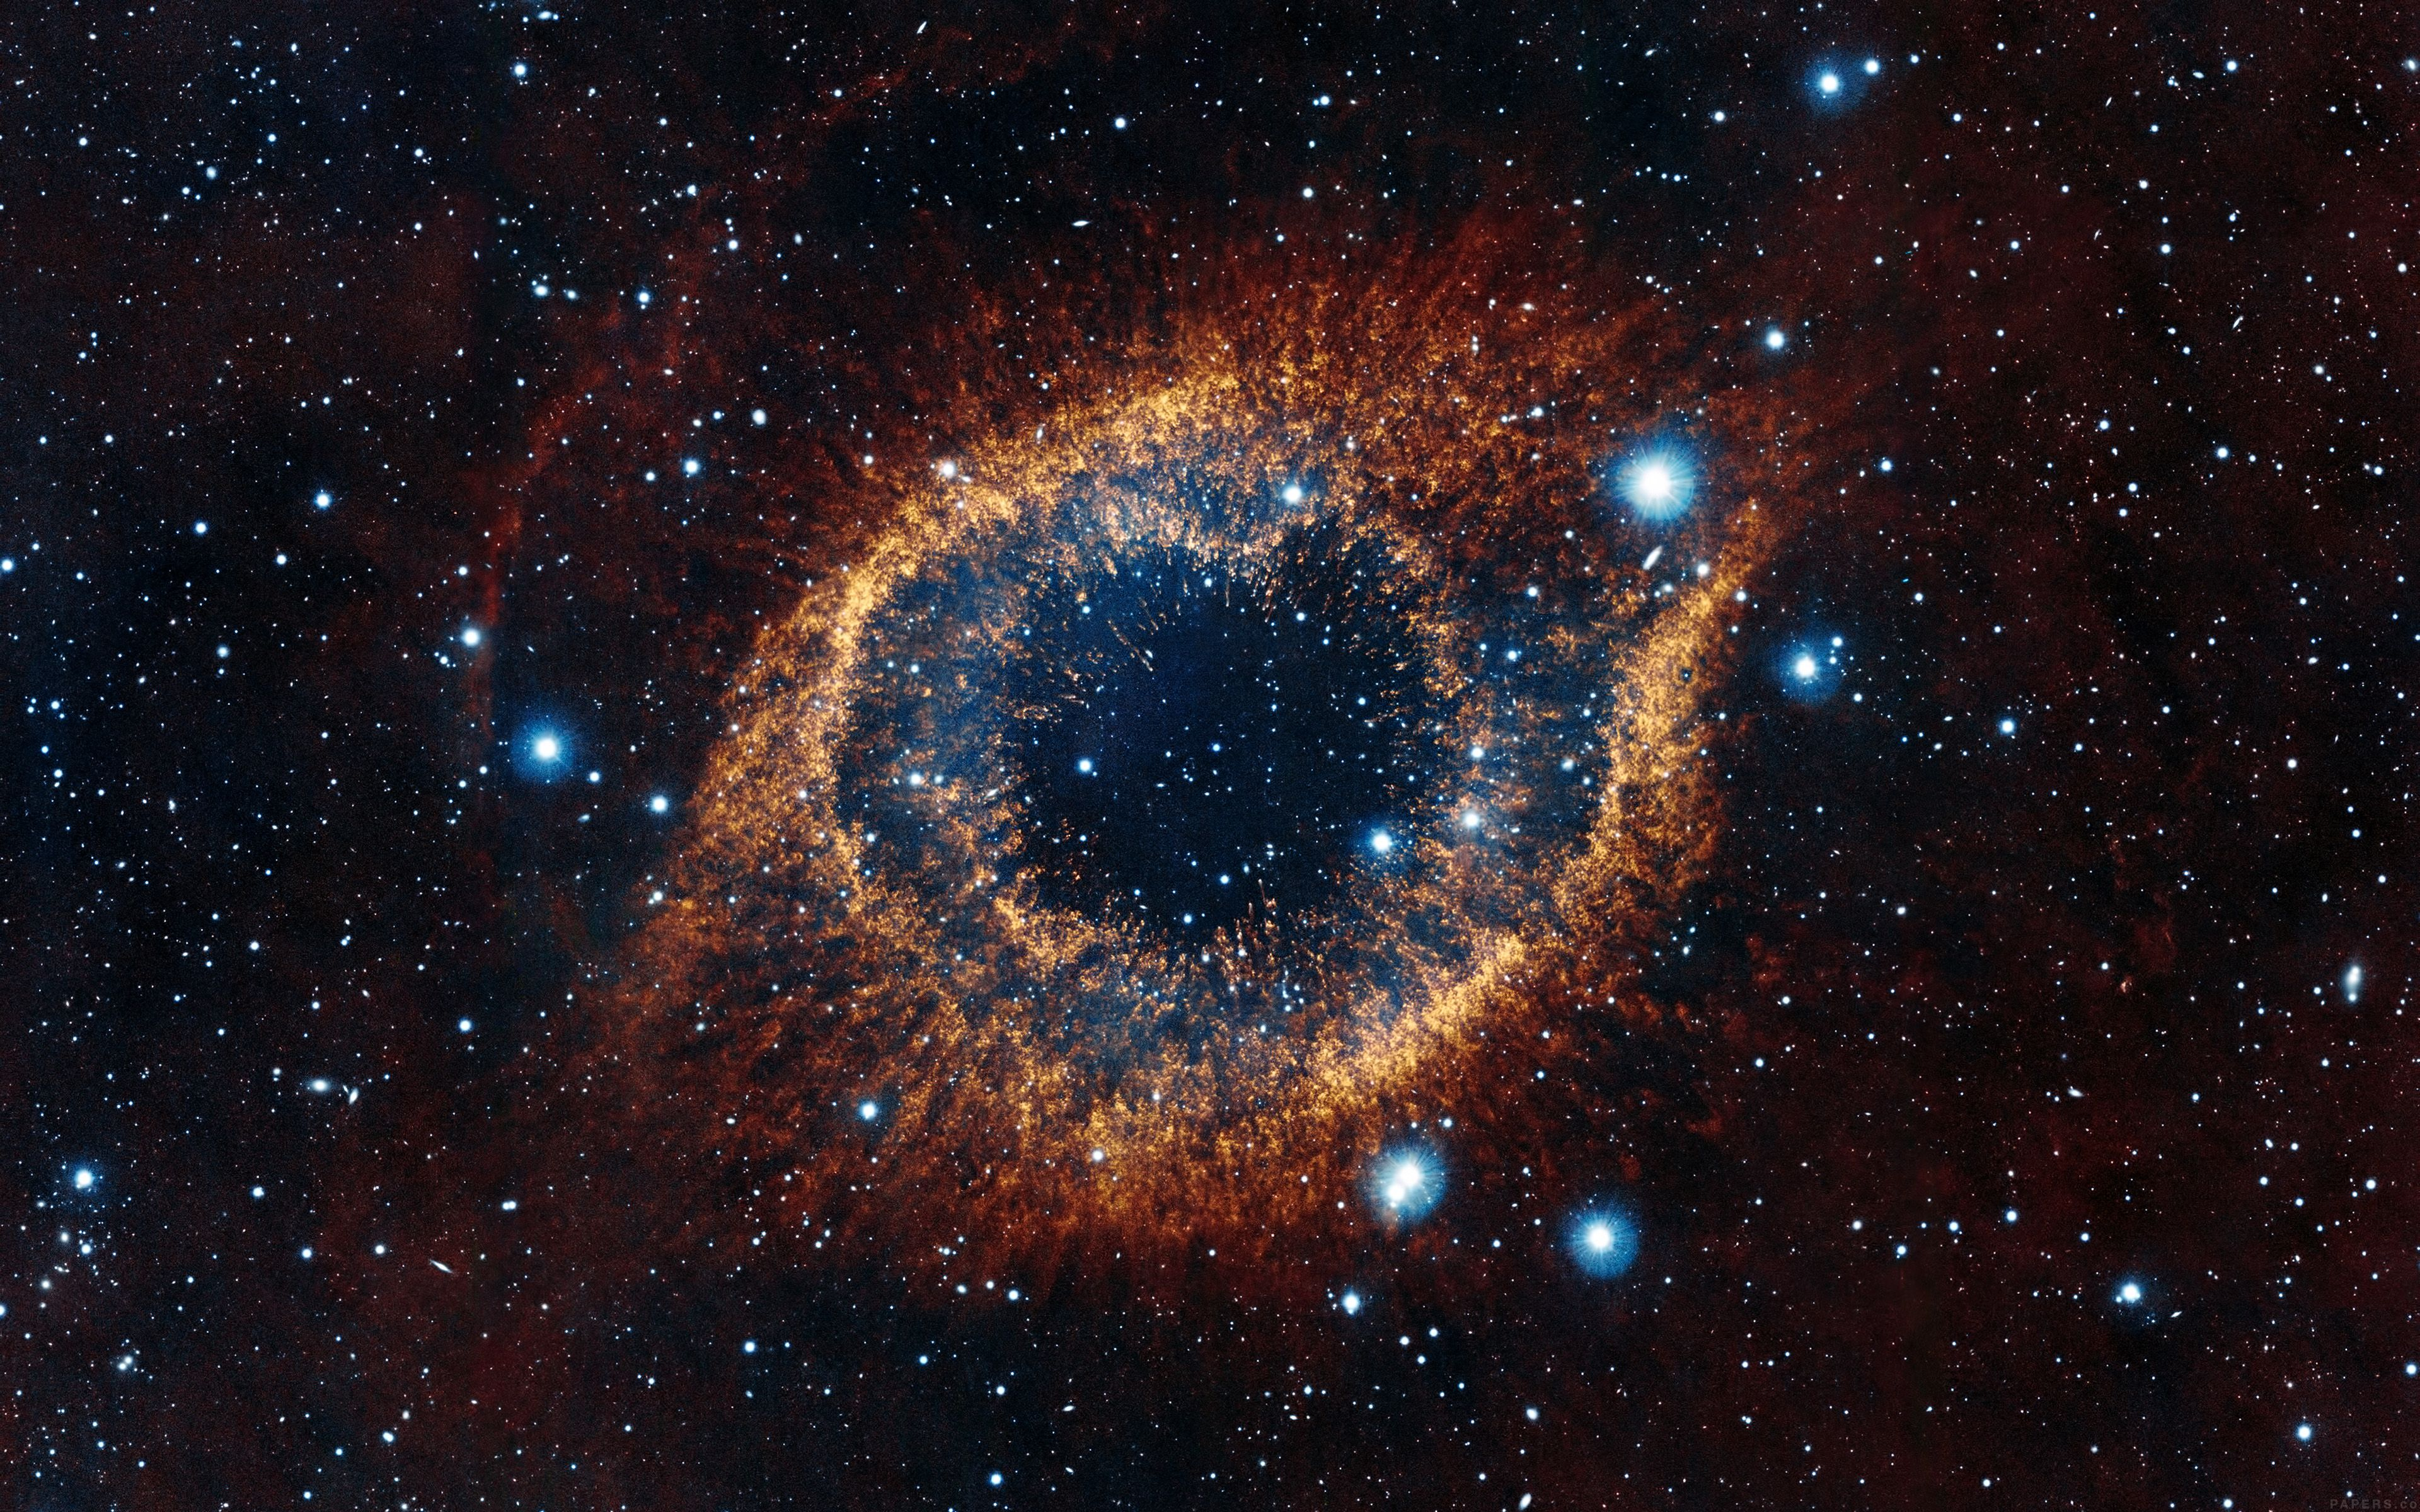 Image Result For 4k Space Wallpapers En 2019 Helix Nebula